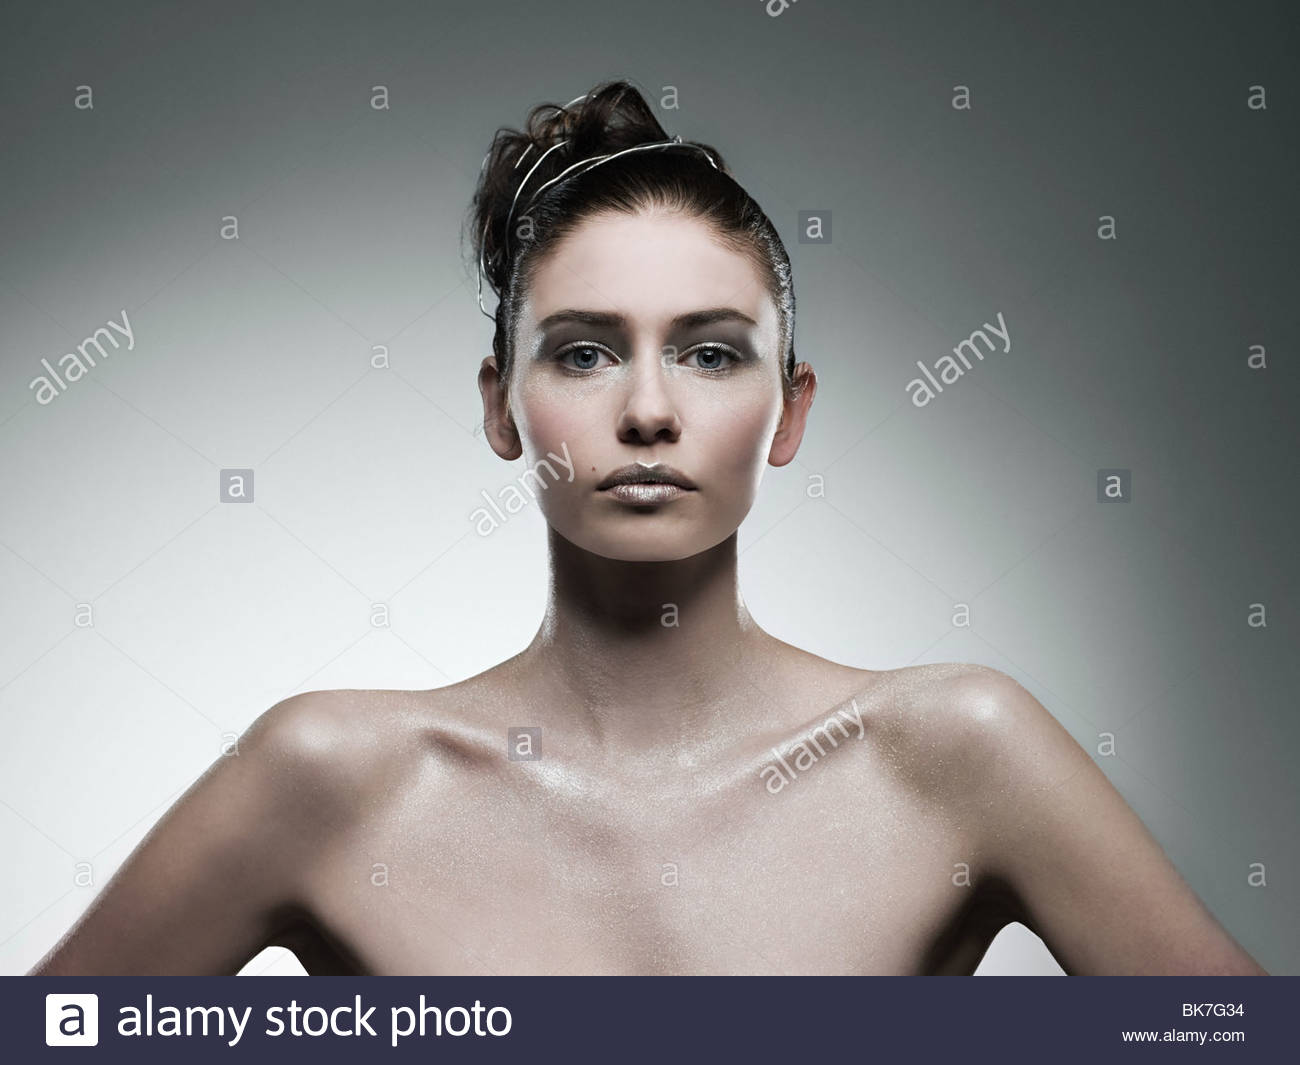 Young woman covered with silver make up - Stock Image